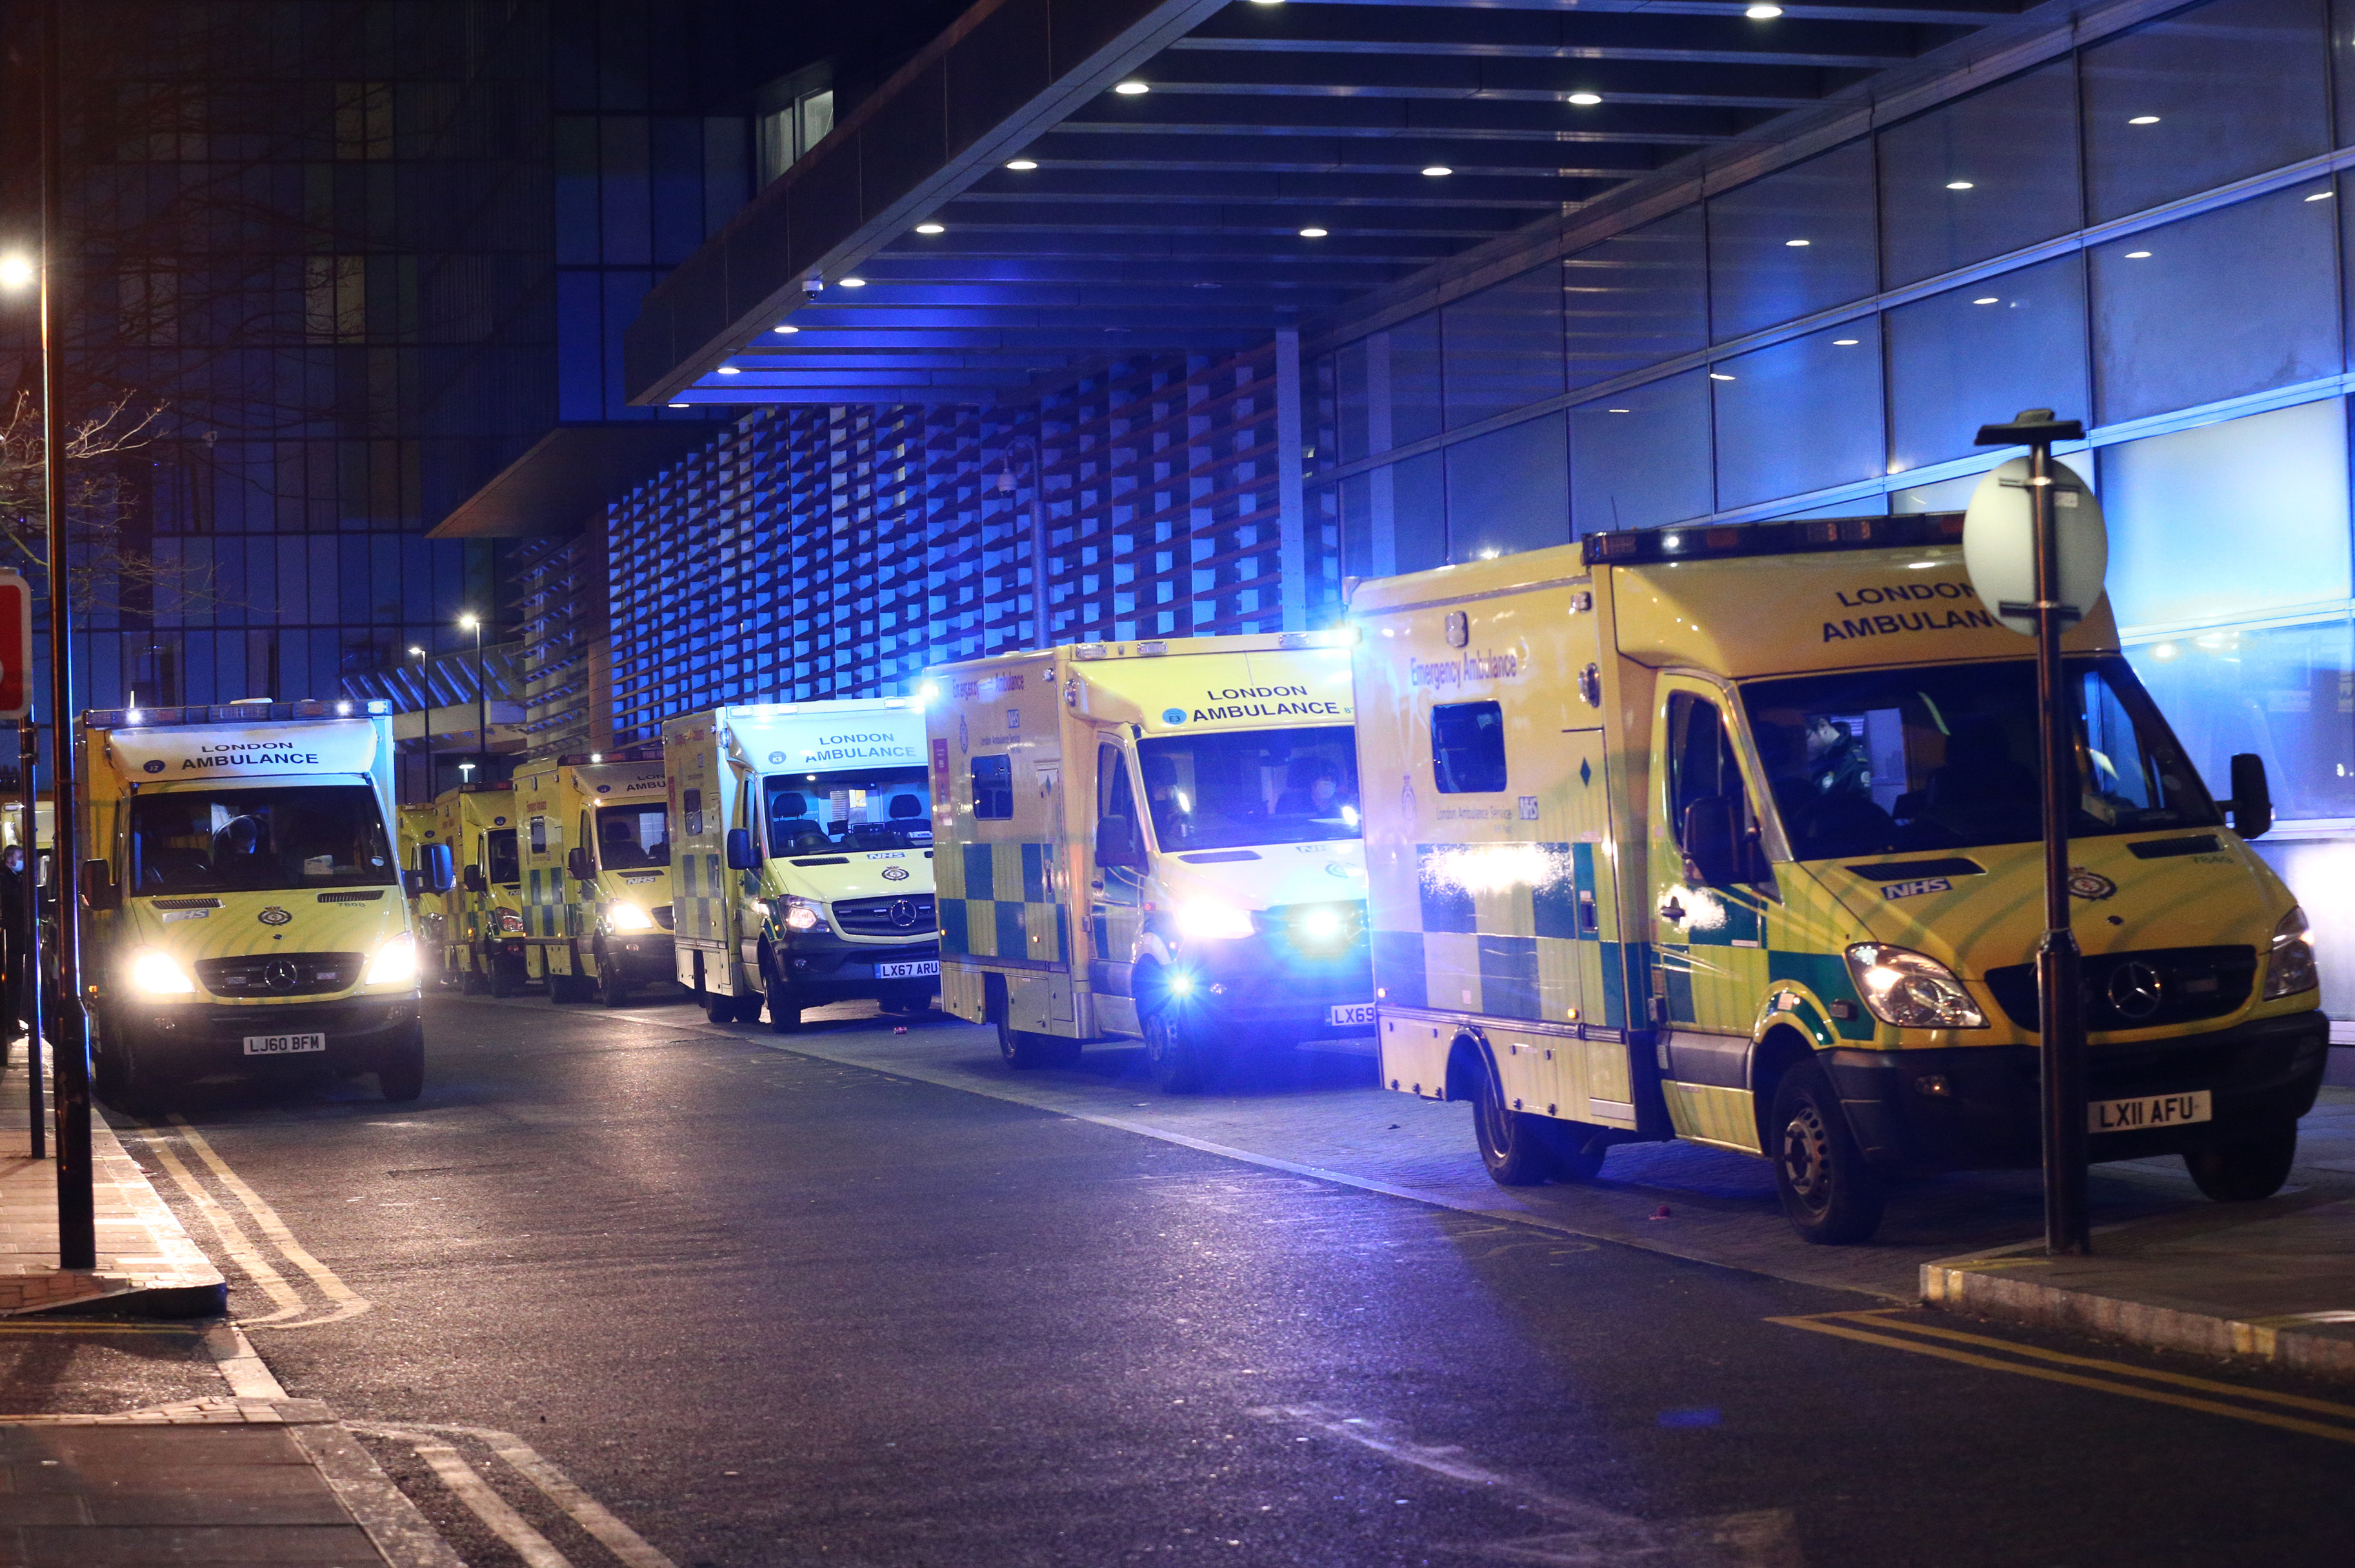 Ambulances queued outside the Royal London Hospital, in London. (Photo by Yui Mok/PA Images via Getty Images)